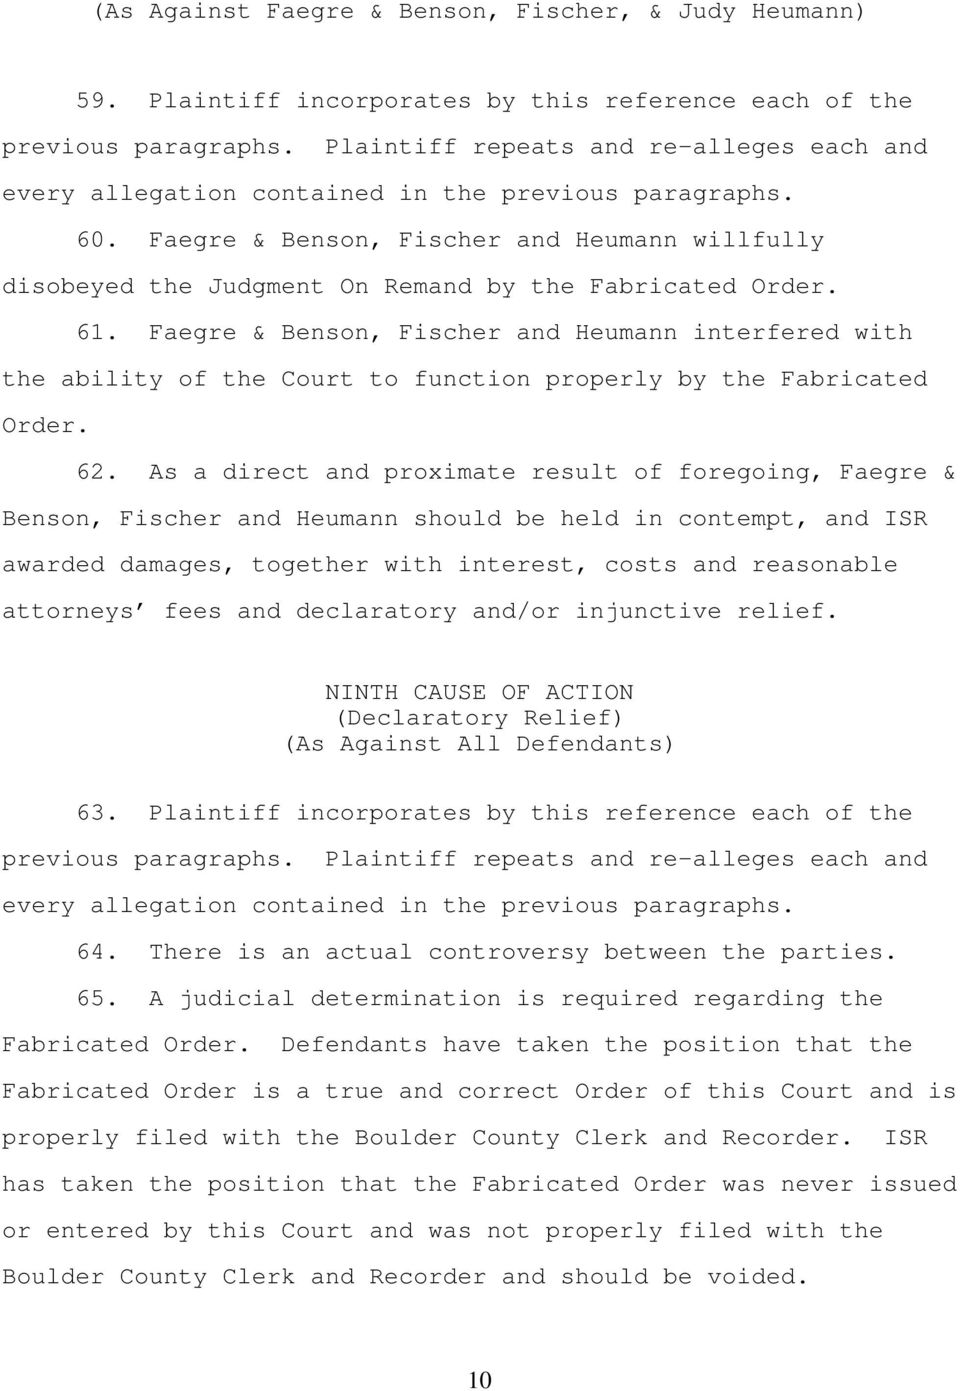 Faegre & Benson, Fischer and Heumann interfered with the ability of the Court to function properly by the Fabricated Order. 62.